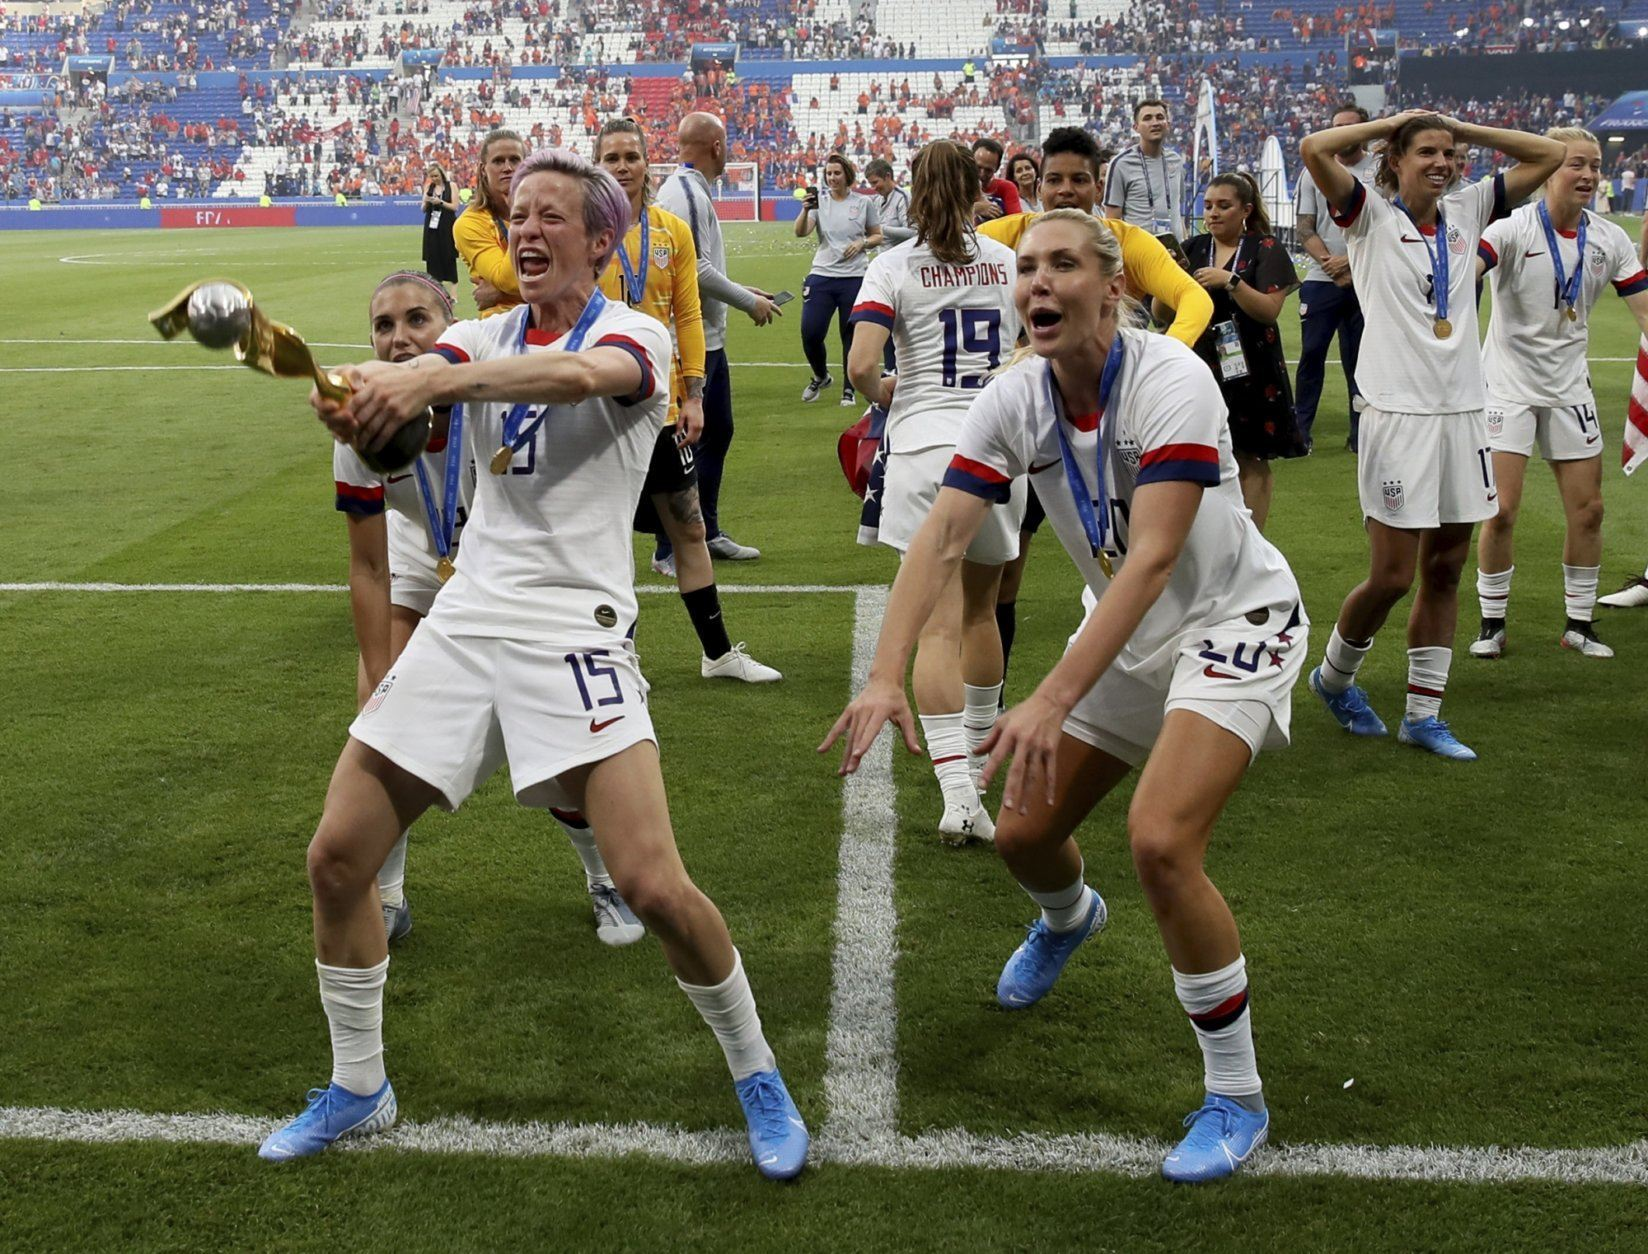 United States' Megan Rapinoe , left, celebrates with teammates their victory in the Women's World Cup final soccer match between US and The Netherlands at the Stade de Lyon in Decines, outside Lyon, France, Sunday, July 7, 2019. US won 2:0. (AP Photo/David Vincent)